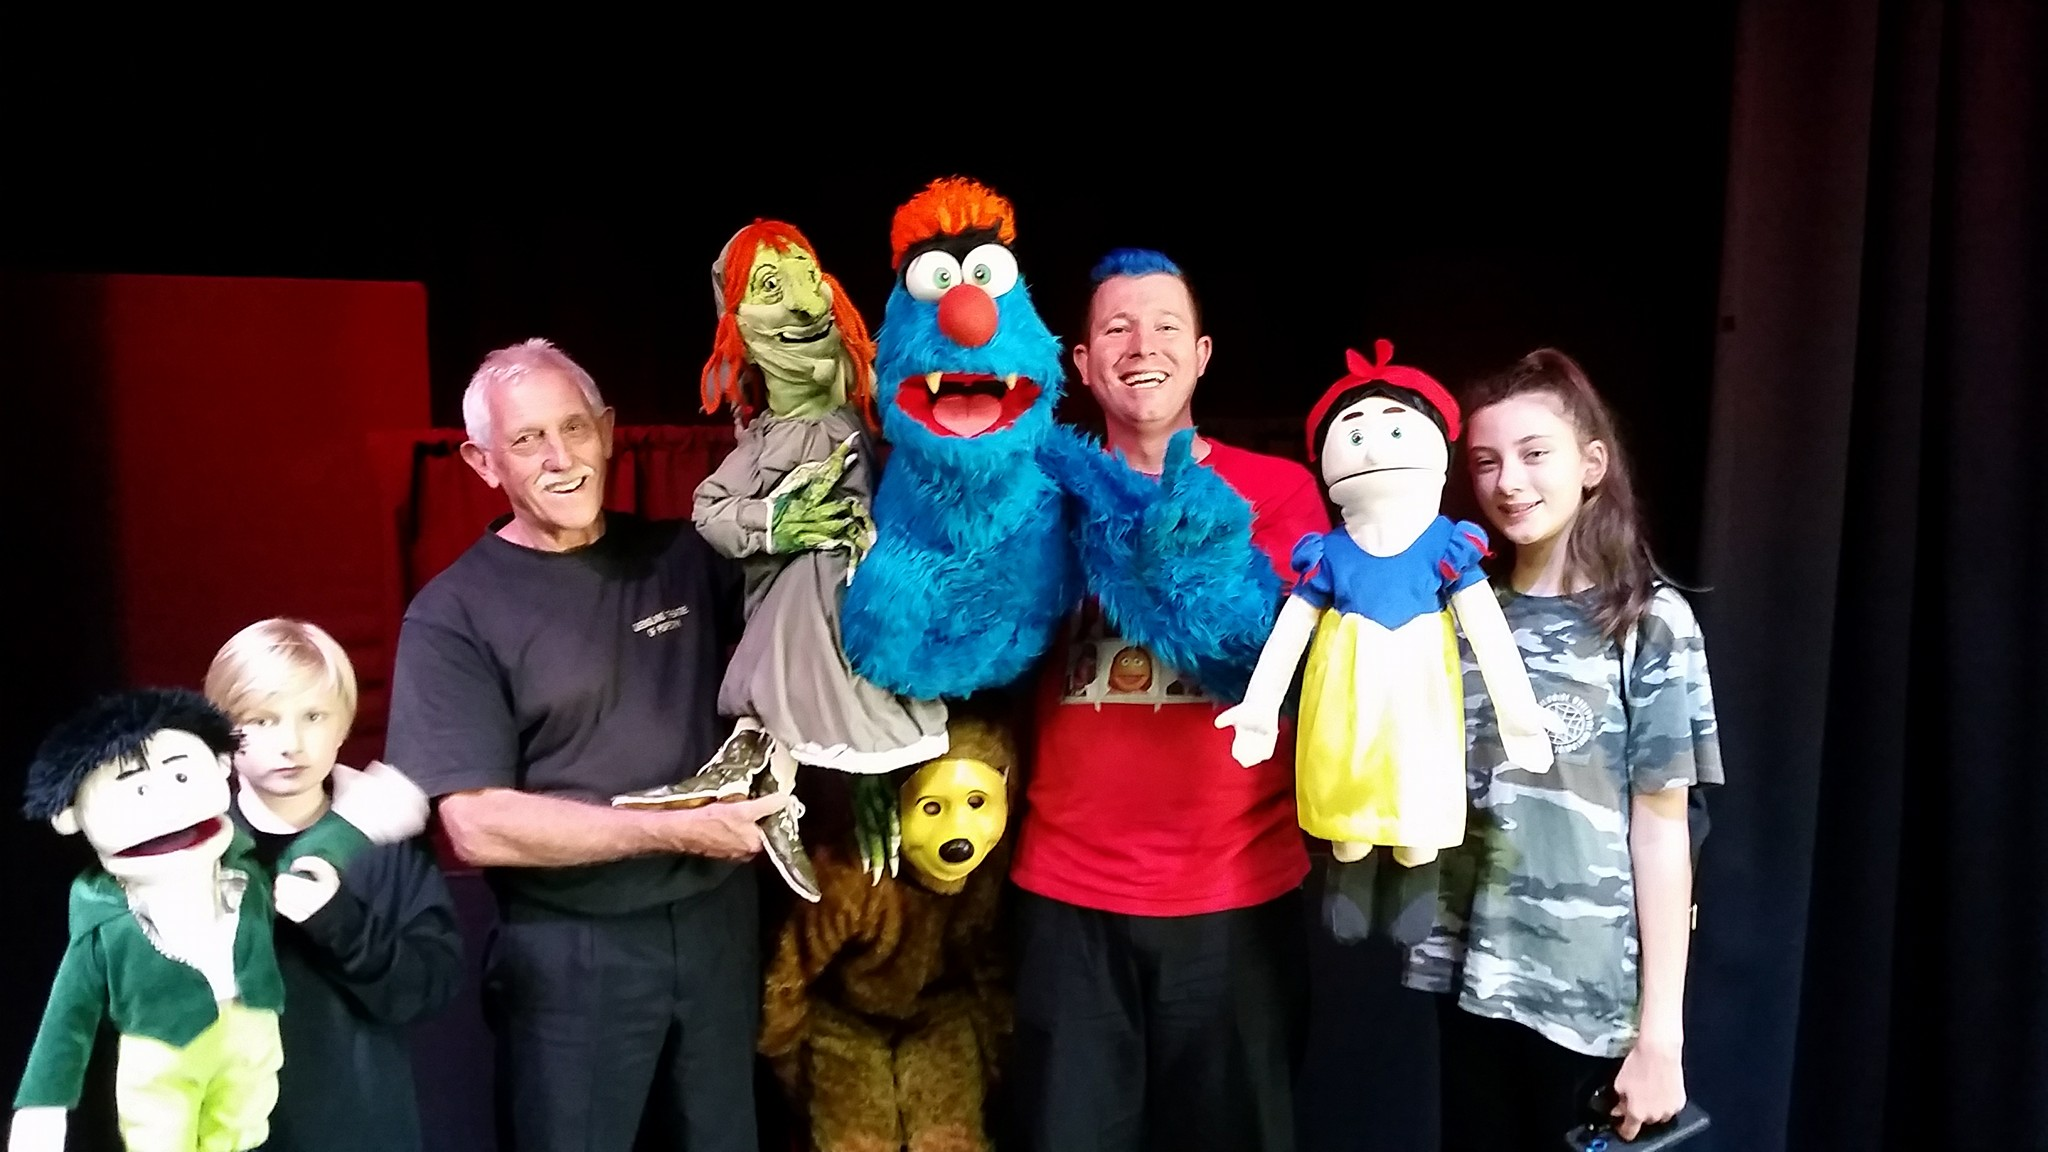 Queensland Theatre of Puppetry